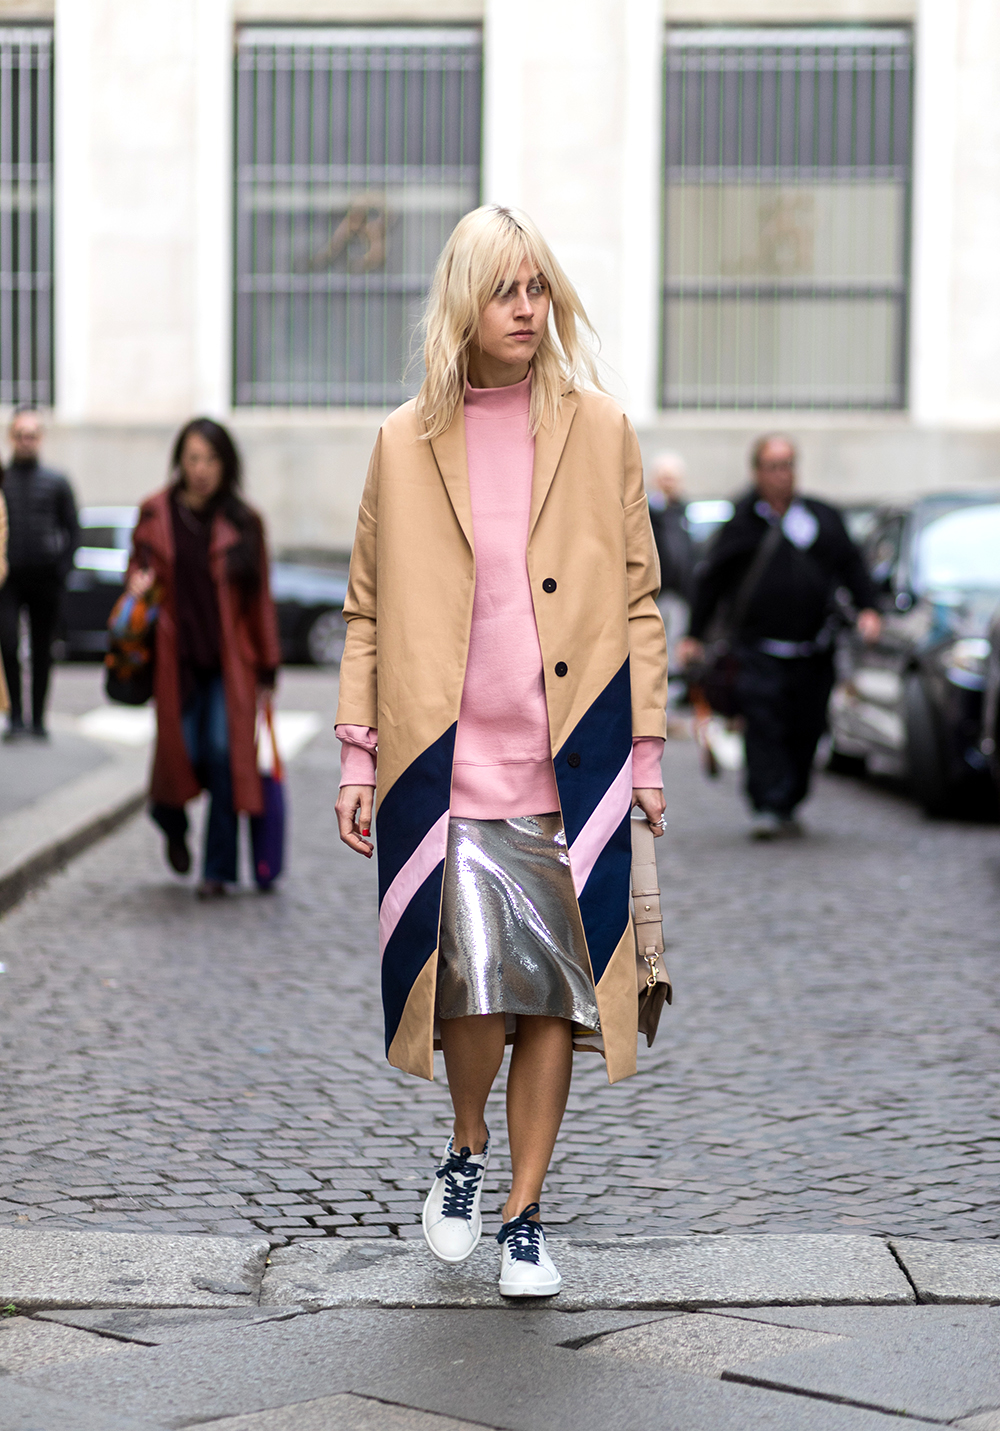 MILAN, ITALY - FEBRUARY 26: Linda Tol wearing pink knit, beige coat, silver skirt, JW Anderson bag, white sneaker outside Salvatore Ferragamo during Milan Fashion Week Fall/Winter 2017/18 on February 26, 2017 in Milan, Italy. (Photo by Christian Vierig/Getty Images)